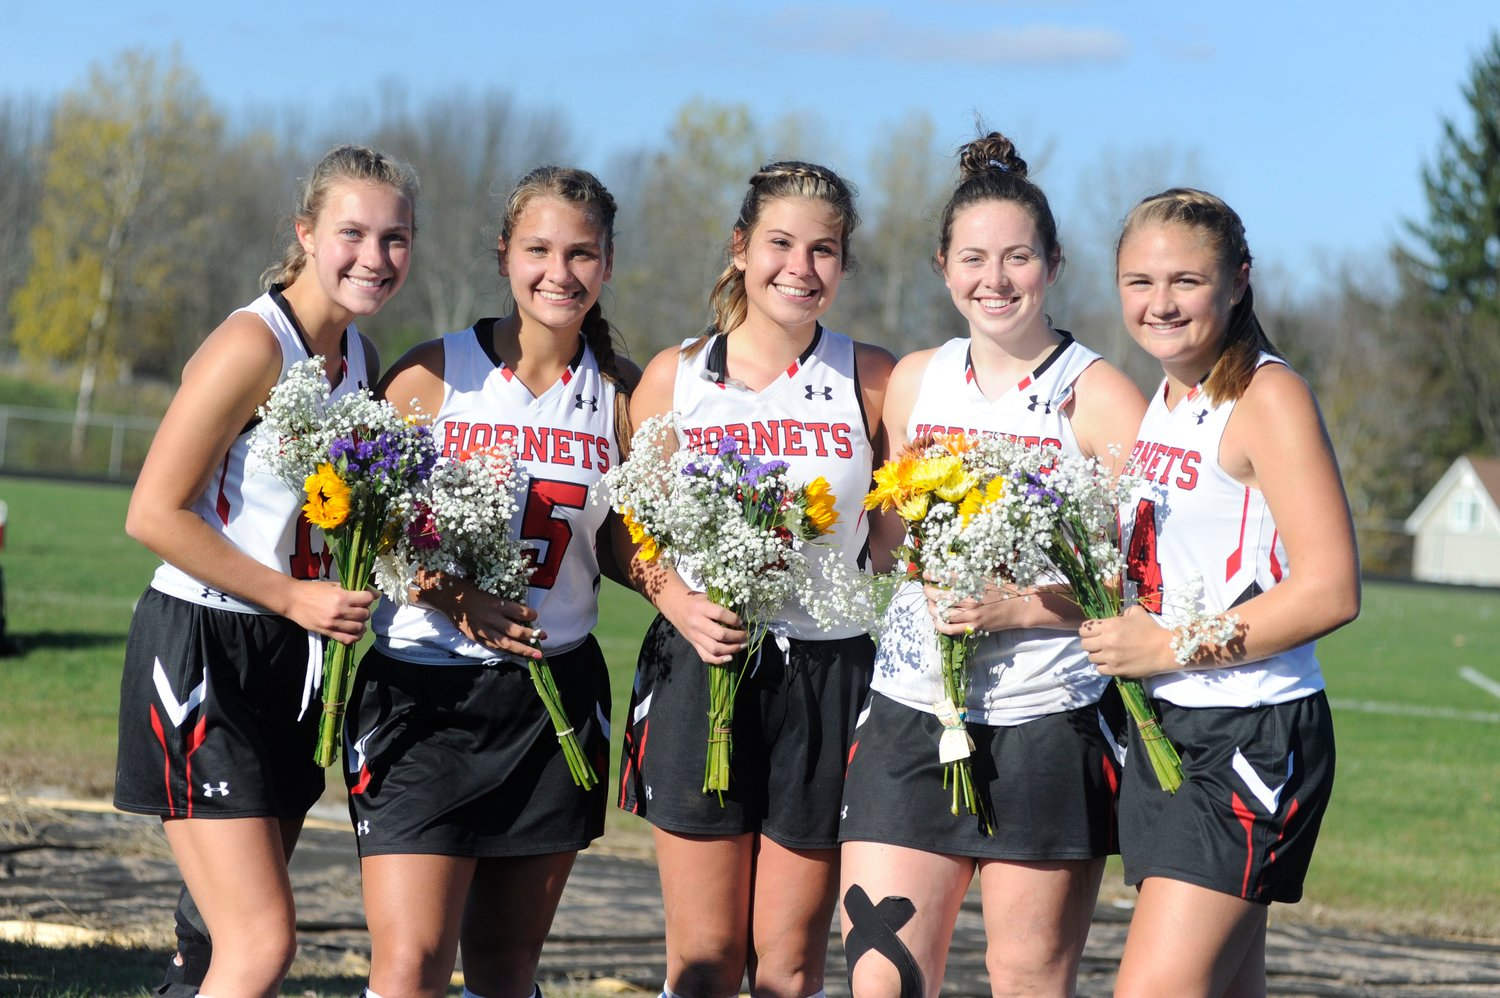 We are the seniors! Honesdale's senior field hockey scholar-athletes played their final home game at the Home of the Hornets. Pictured are Leah Krol (scored the second goal of the match), left, Gina Dell'Aquila, Brynn McGinnis, co-captain Grace Maxson and co-captain Sarah Meyer, who posted her team's first goal.